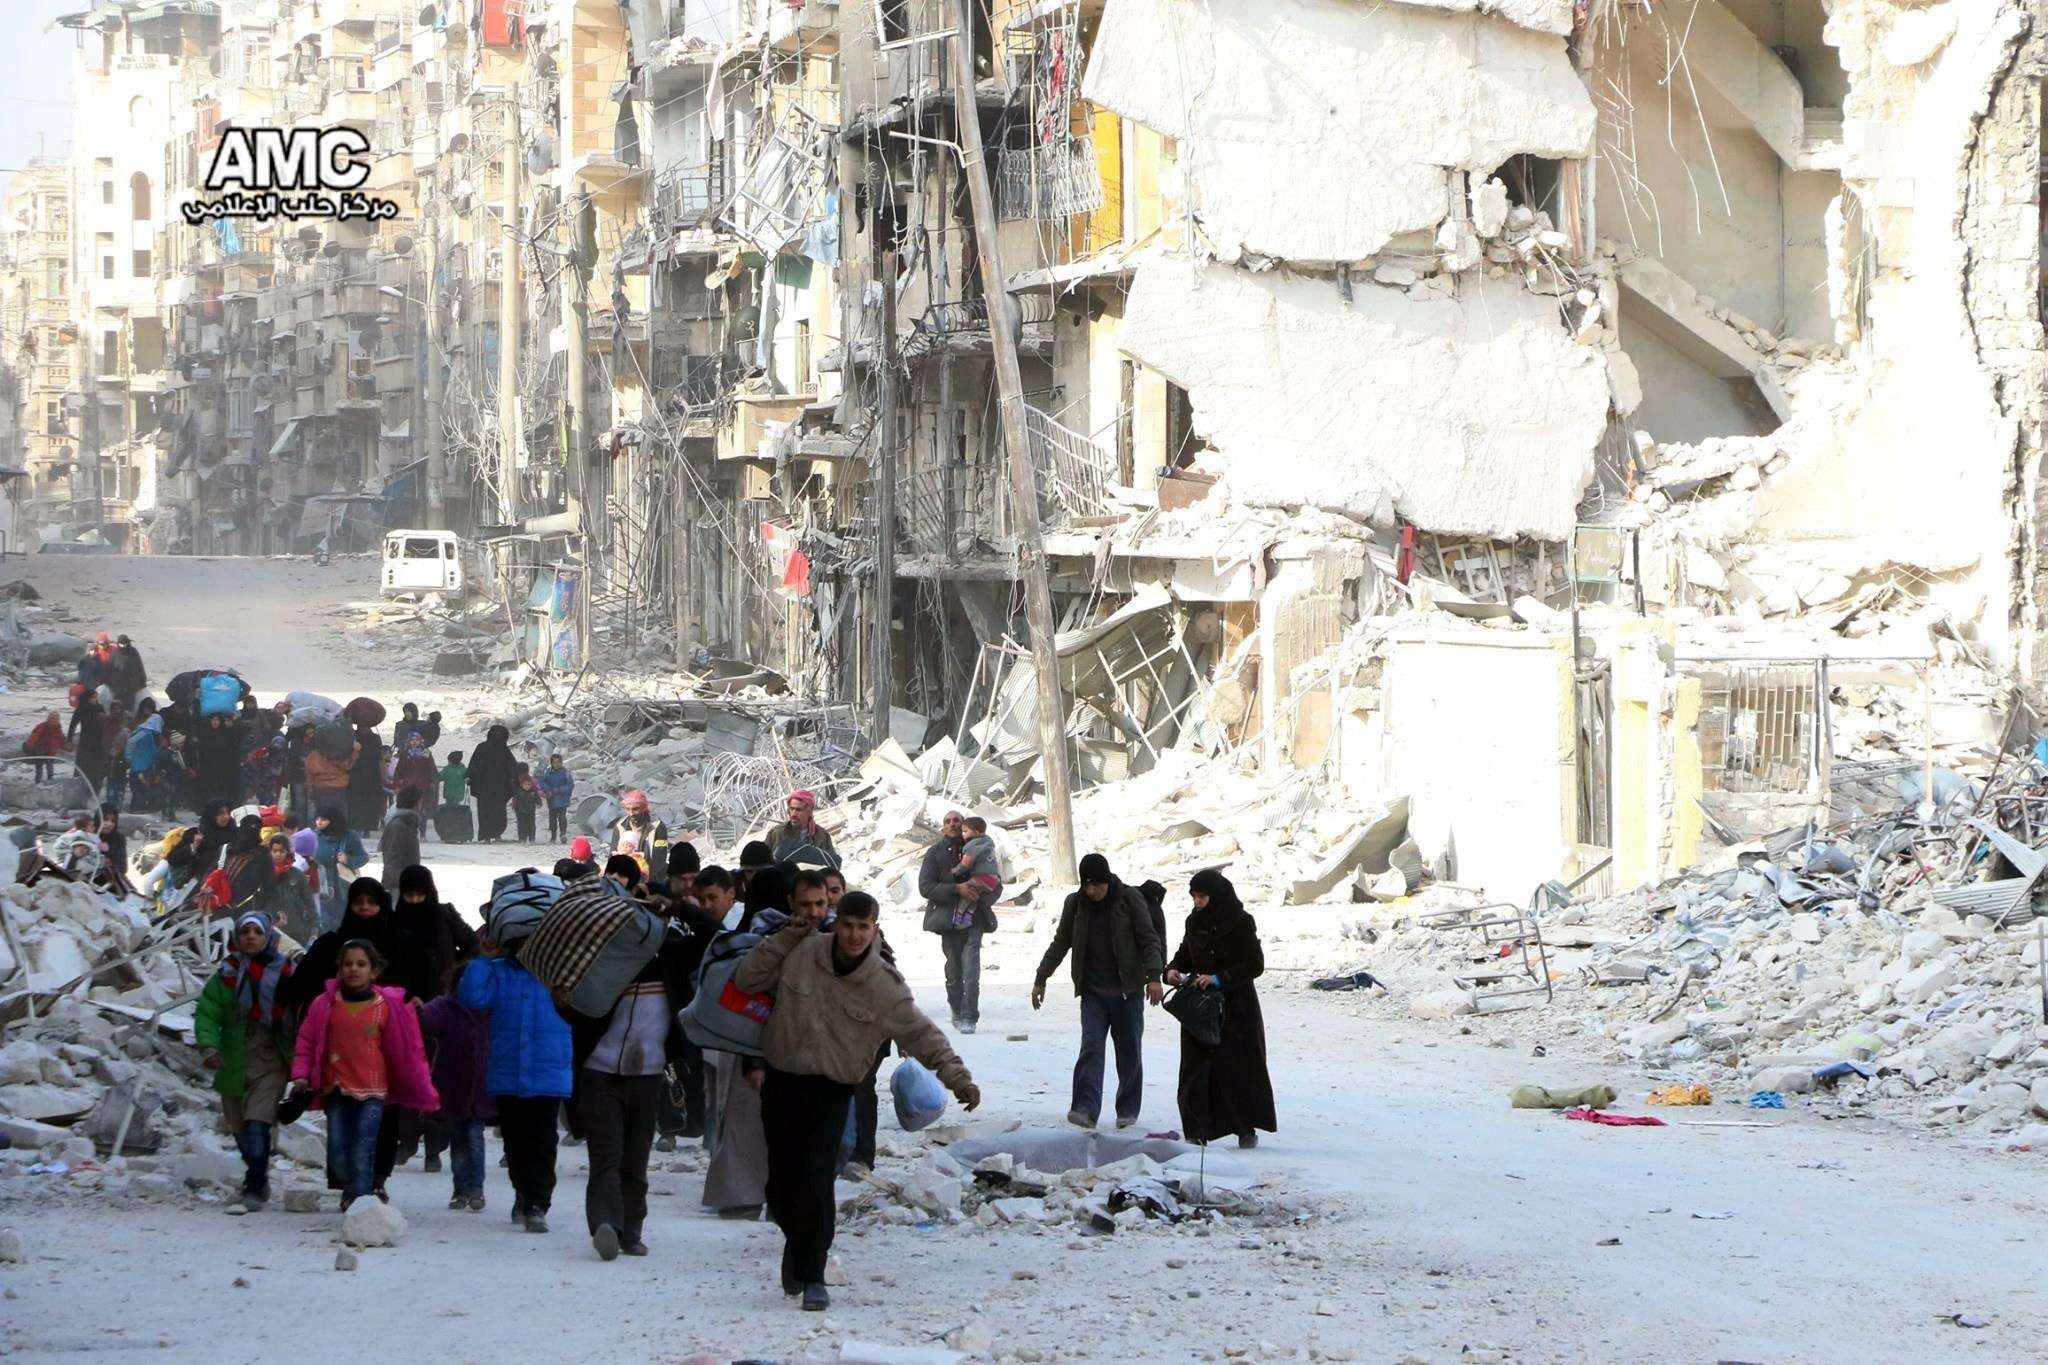 Displaced Syrian families leave the neighborhoods where the fighting occurs in eastern Aleppo, Syria, 29 November 2016. (EPA via  Aleppo Media Center)